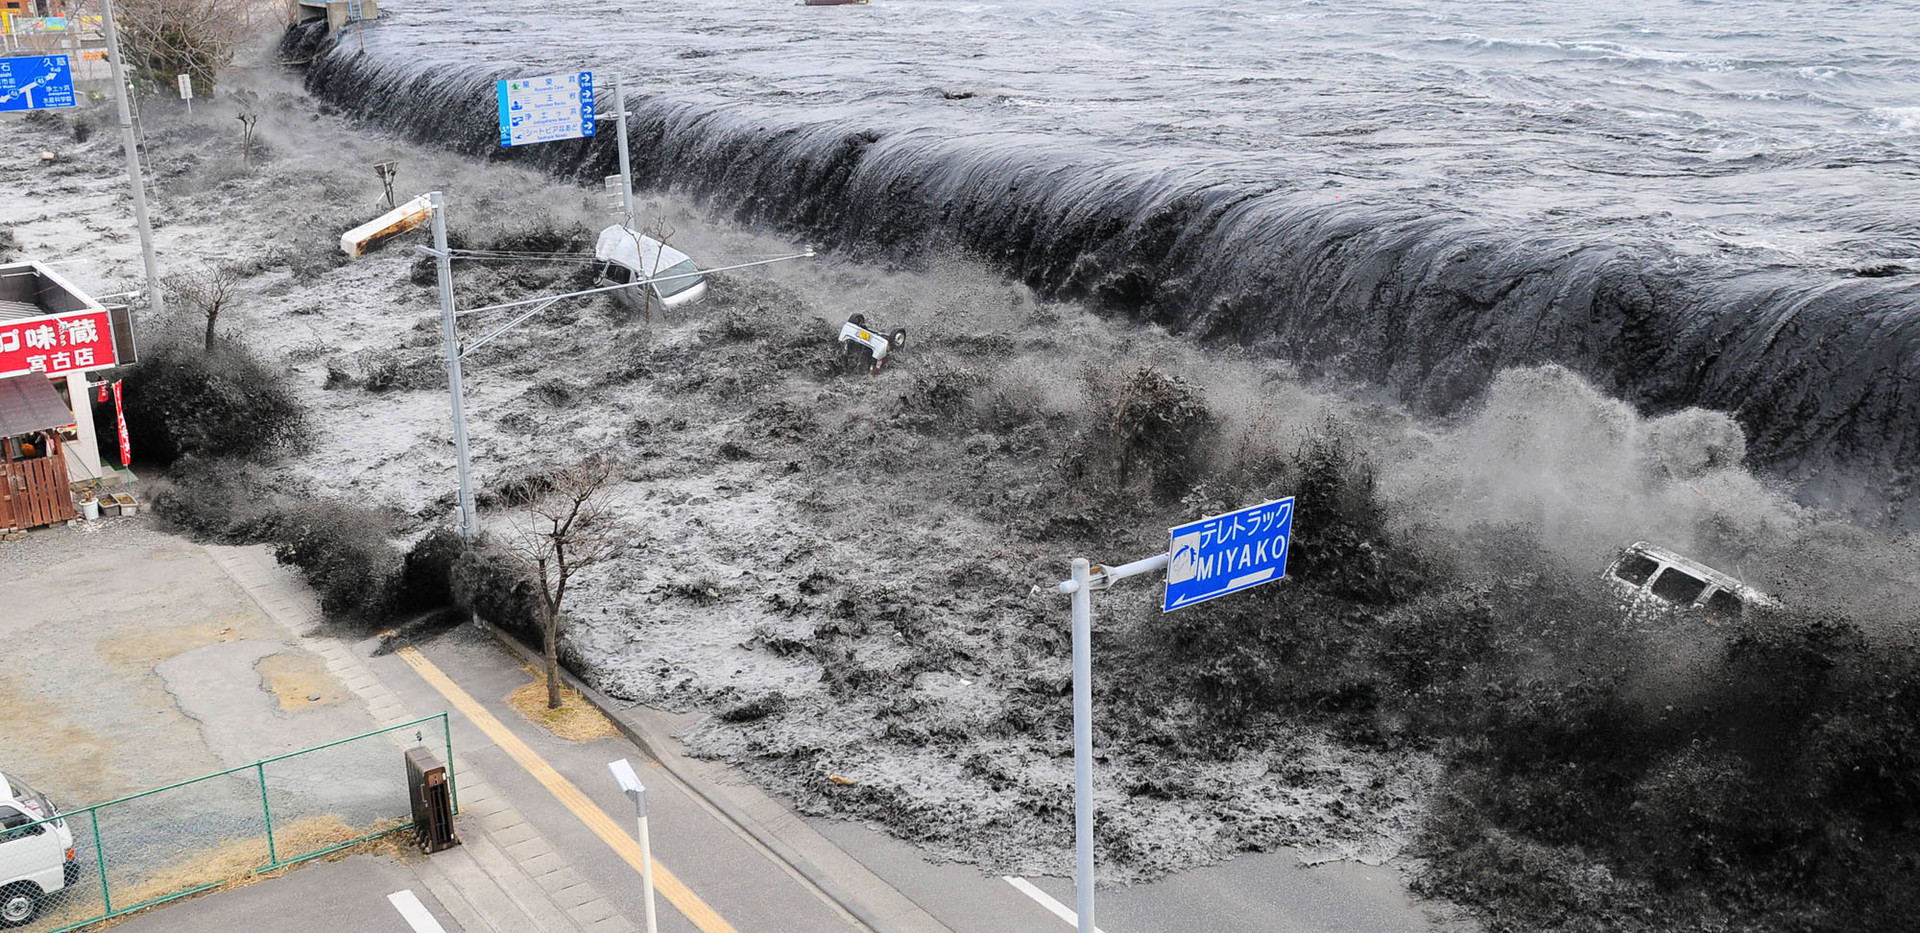 Tsunami crashing over seawalls and onto land